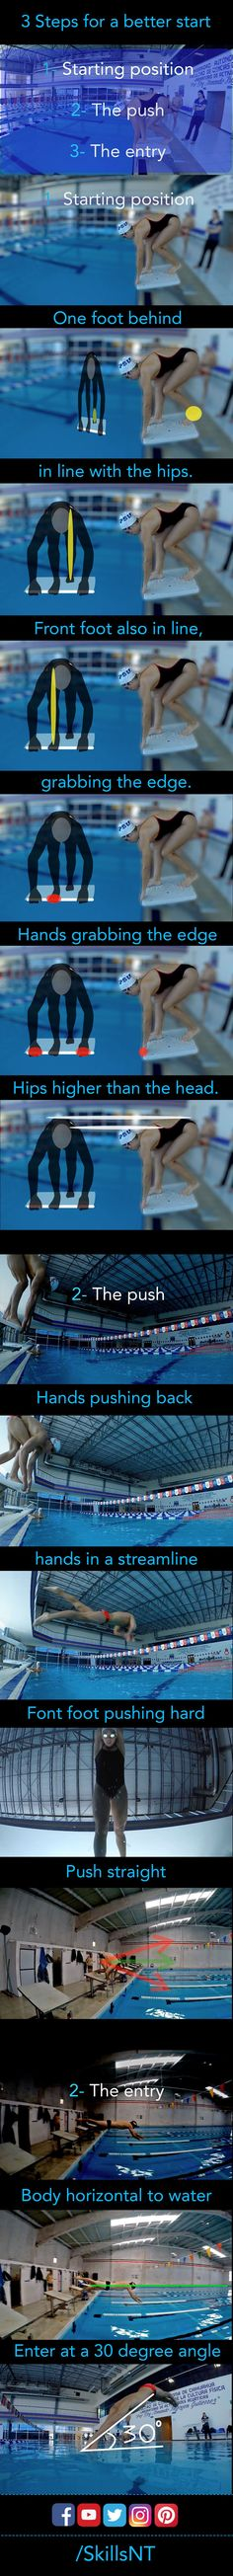 3 steps to learn a competitive start Watch video here -> www.youtube.com/...